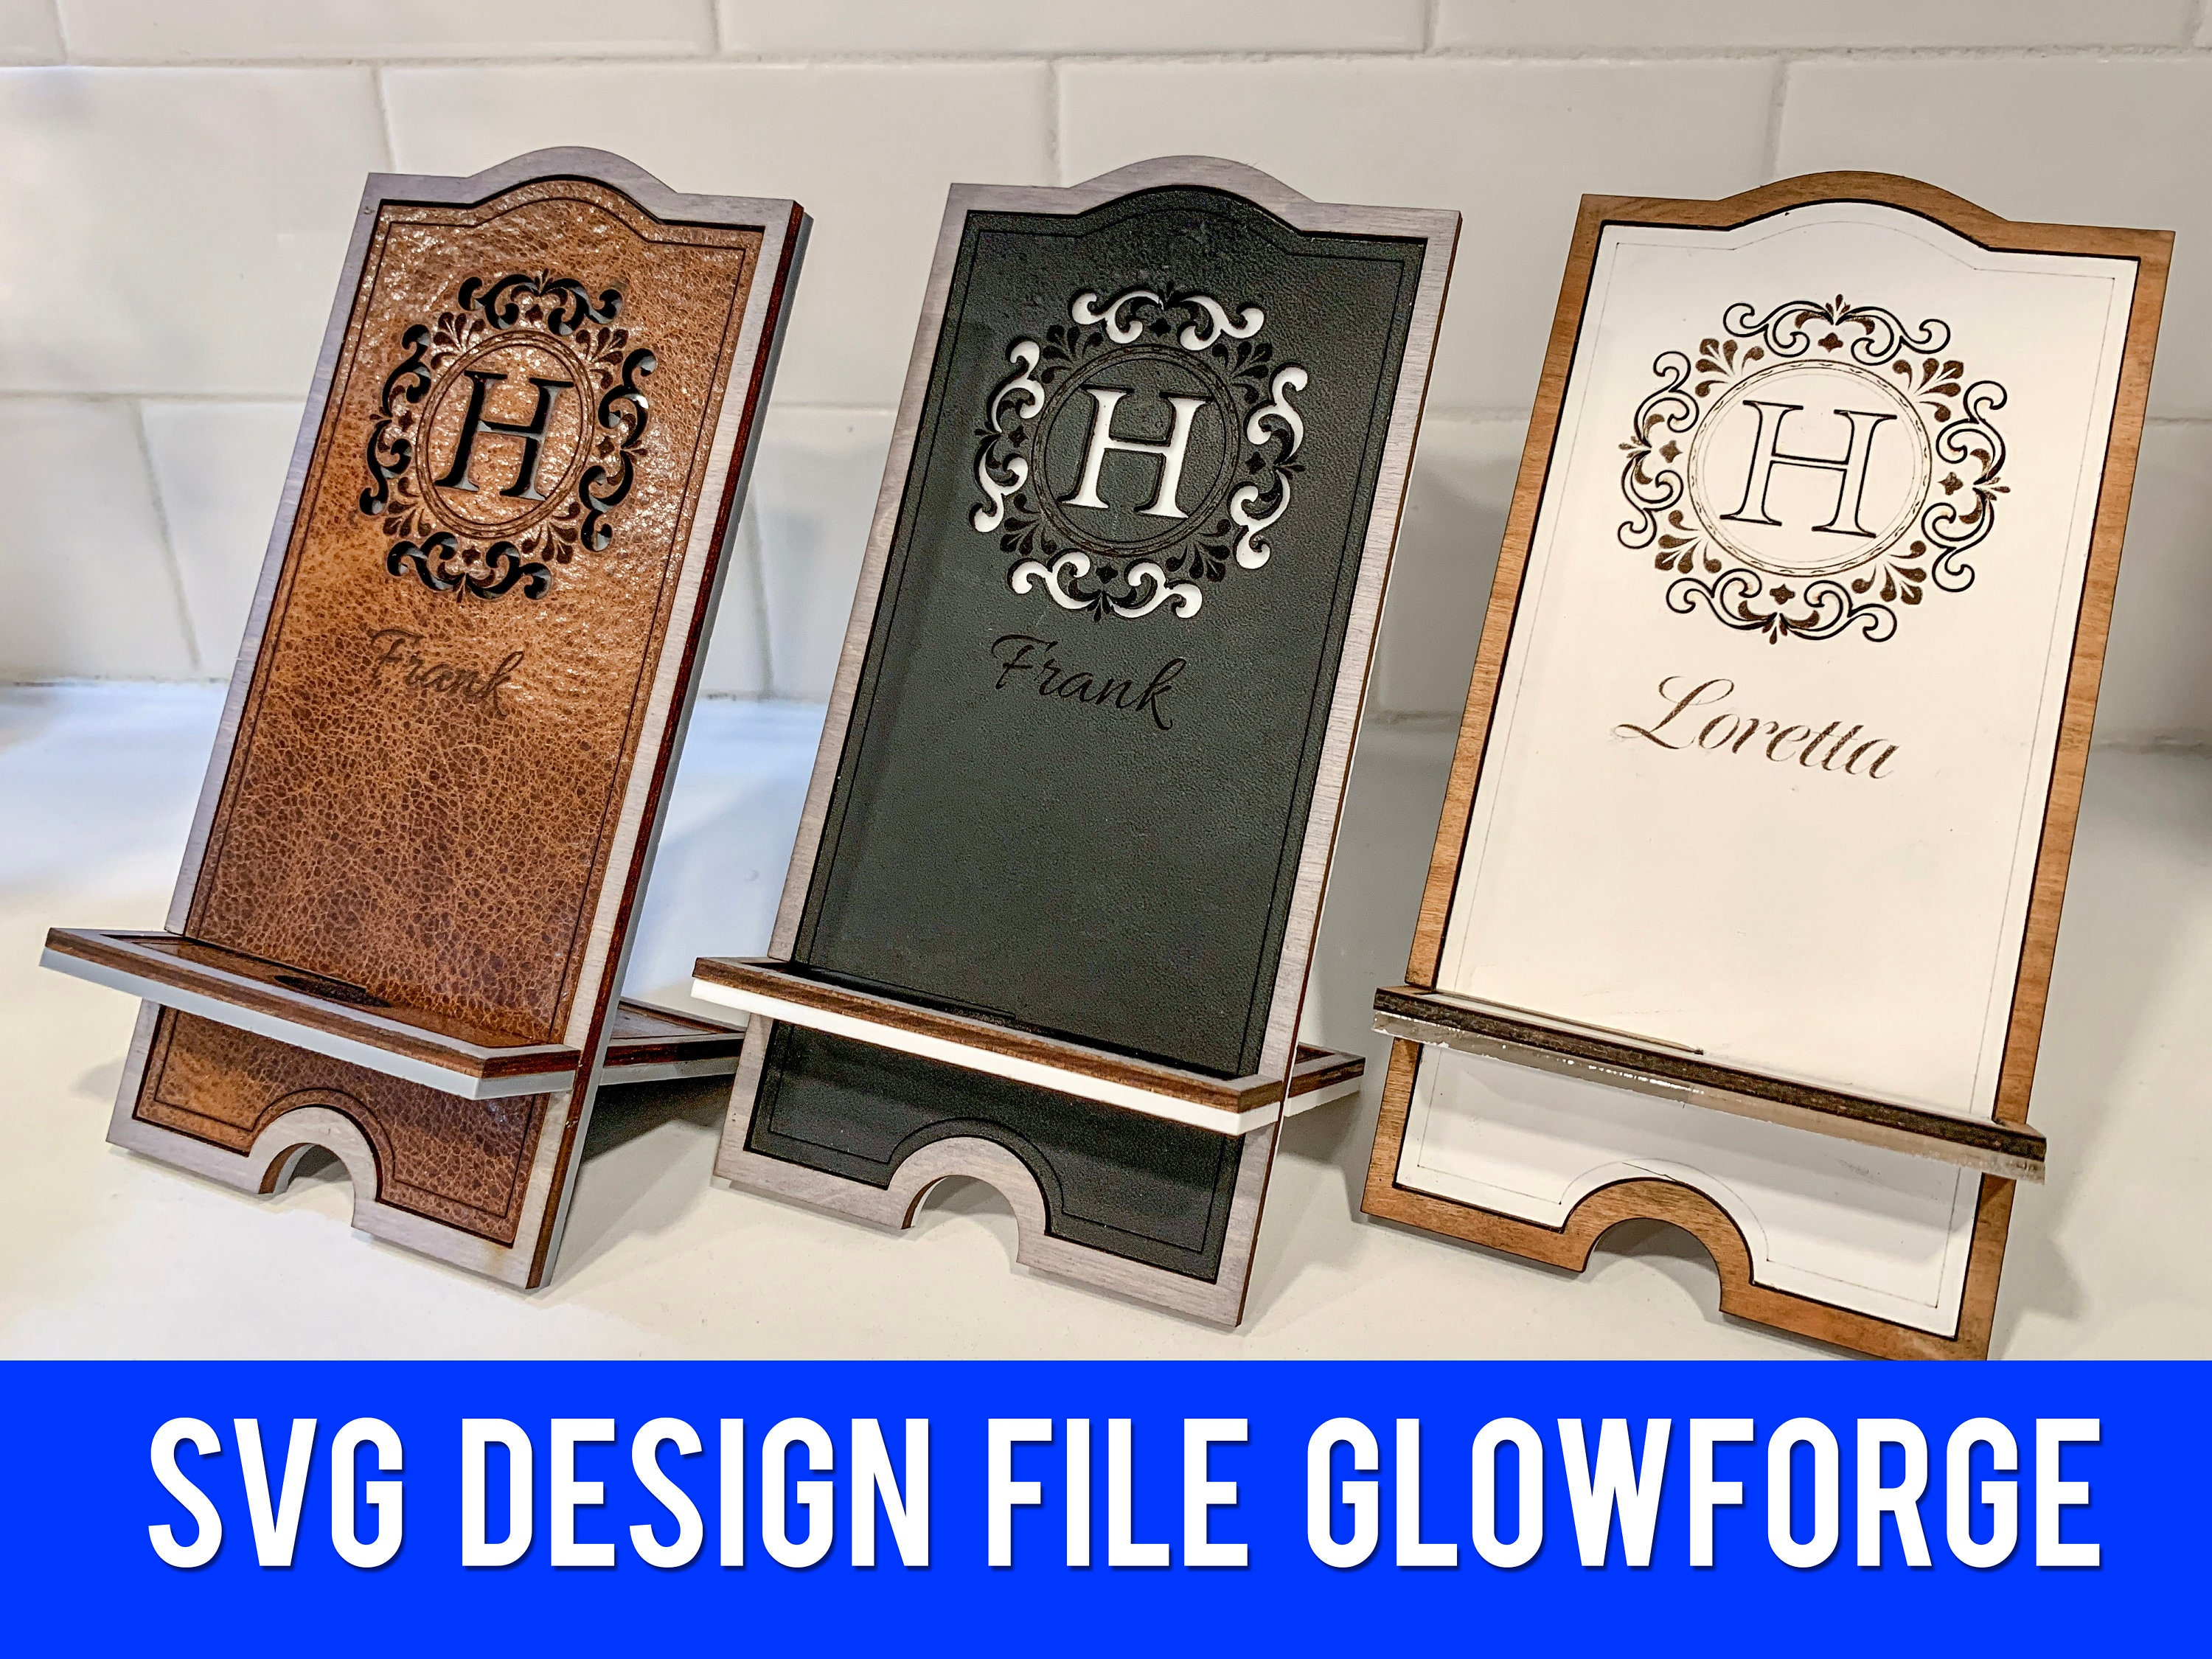 Leather Phone Stand SVG File - Glowforge Ready Design File - Entire Alphabet A-Z